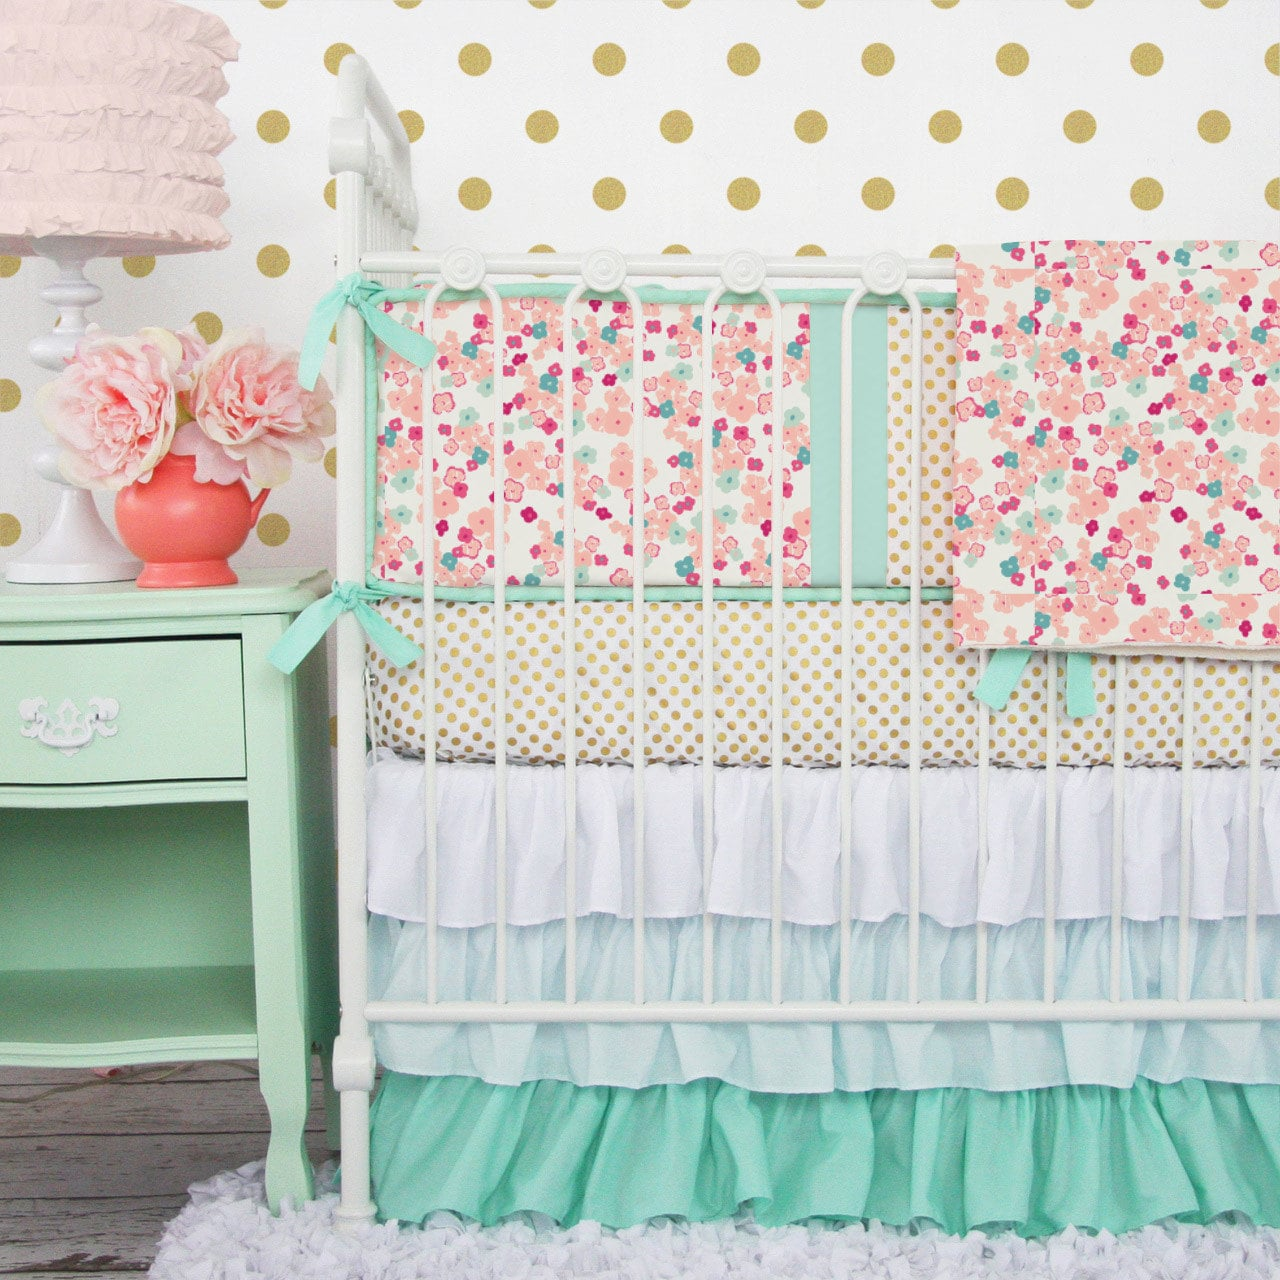 shee patchwork the cotton baby green polka bed peanut piece dots bedding girl fitted and pink ip mint quilt medallions ruffle shell dust floral set coral crib